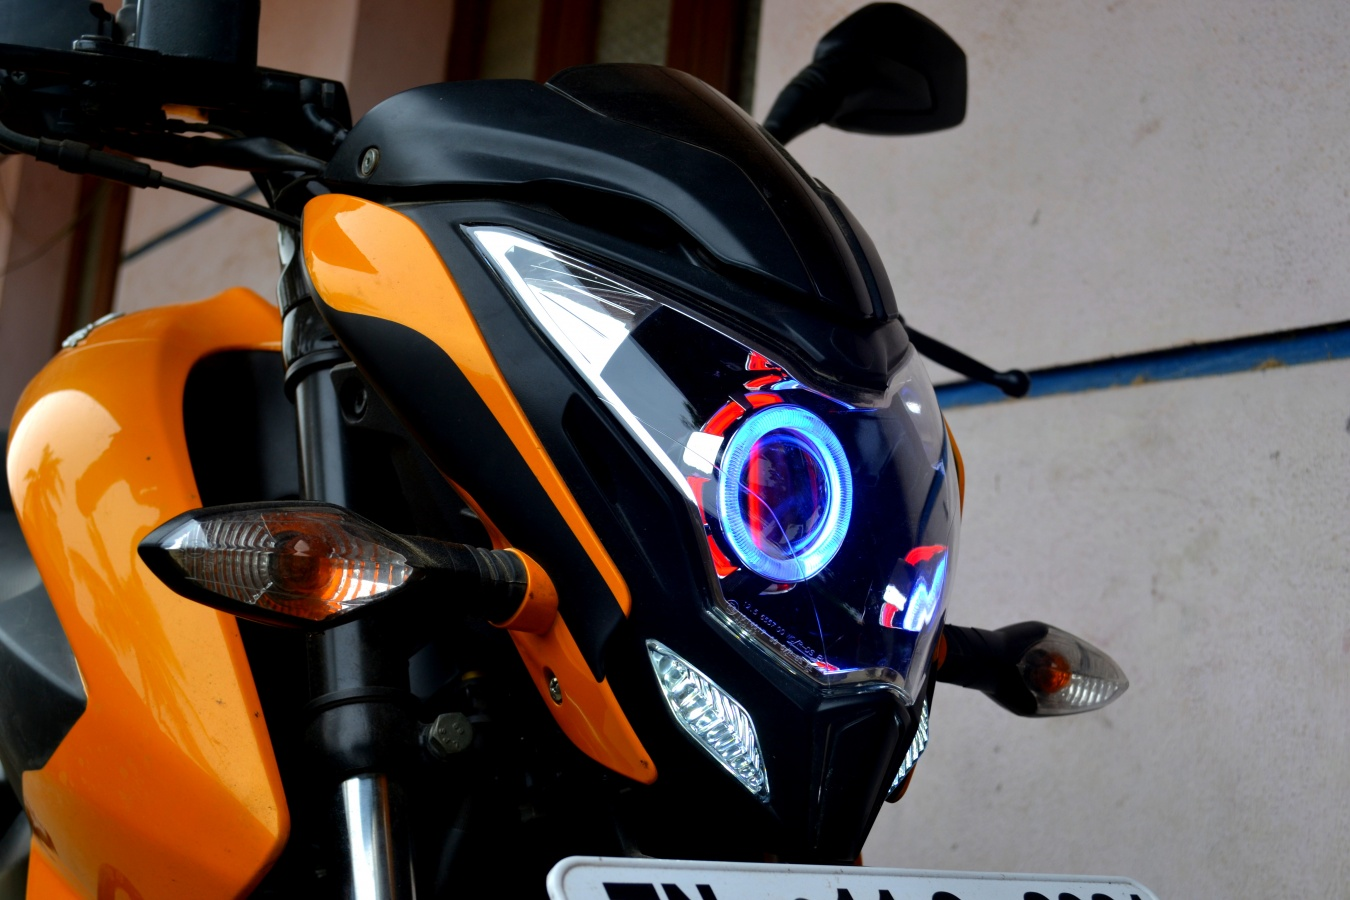 Pulsar 200NS Ownership Experience!! | Page 3 | India ...